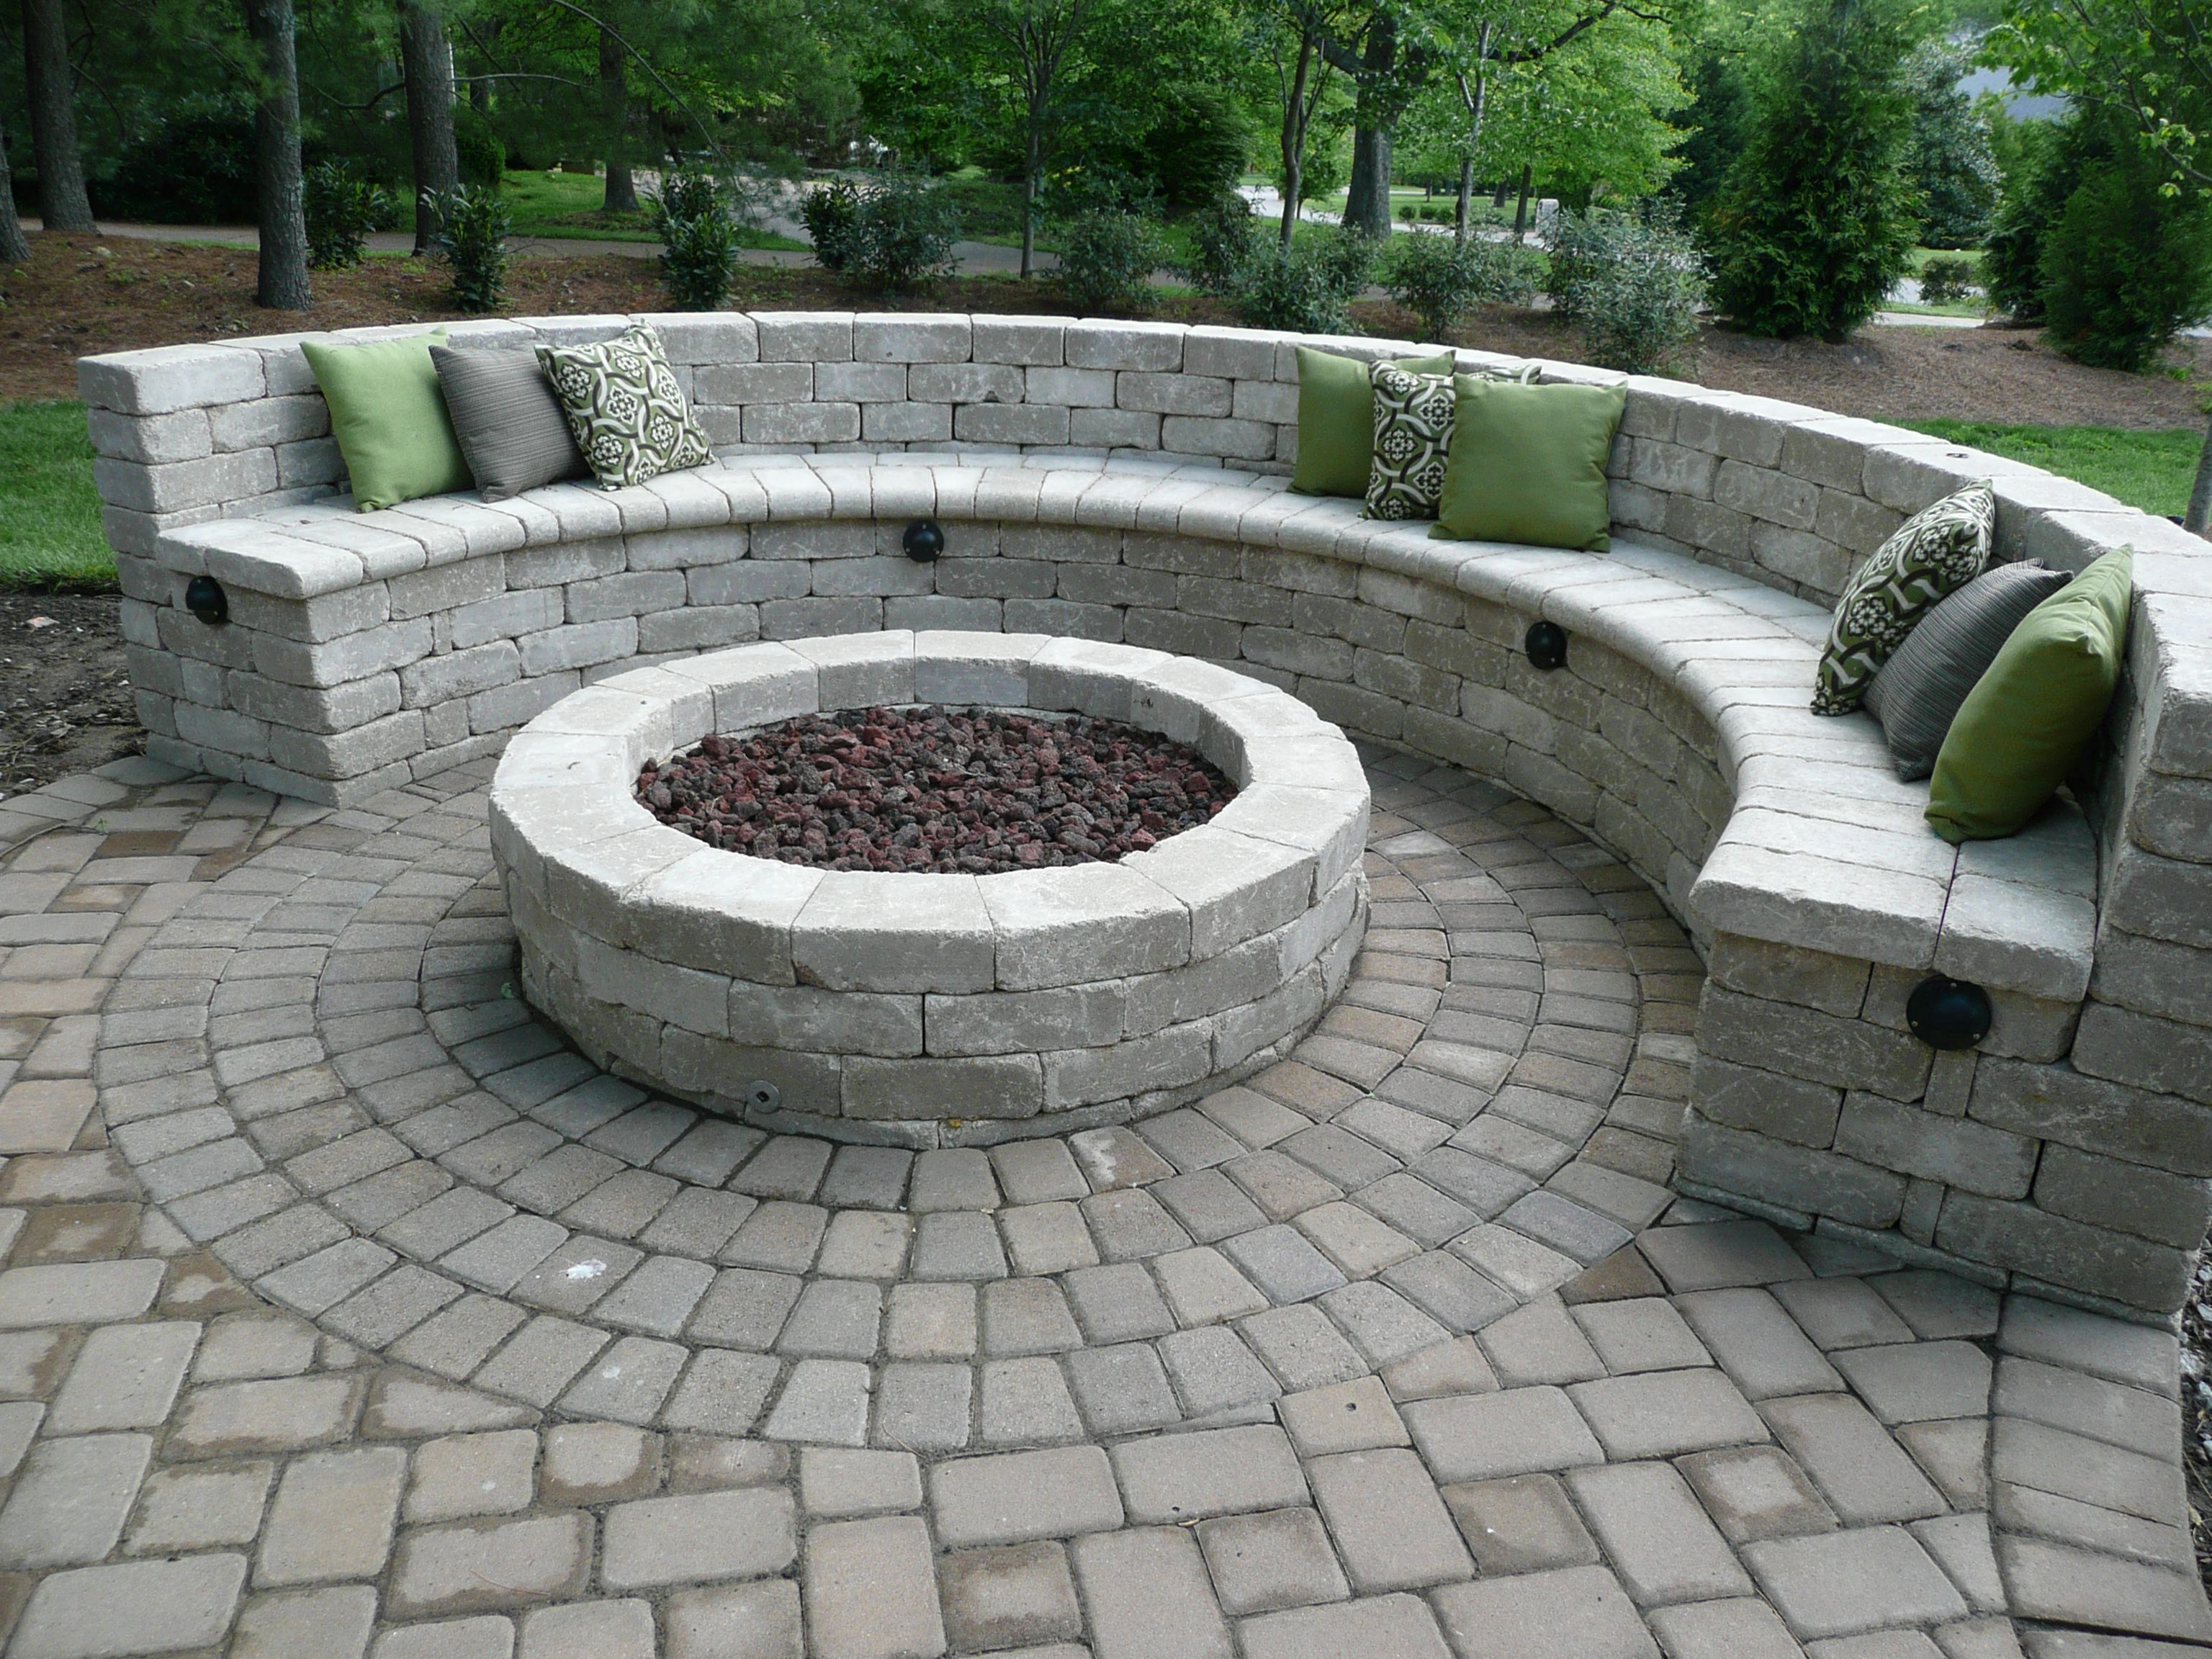 Photo of 15 Awesome Fire Pit Design Ideas to Warm Your Backyard — Design & Decorating